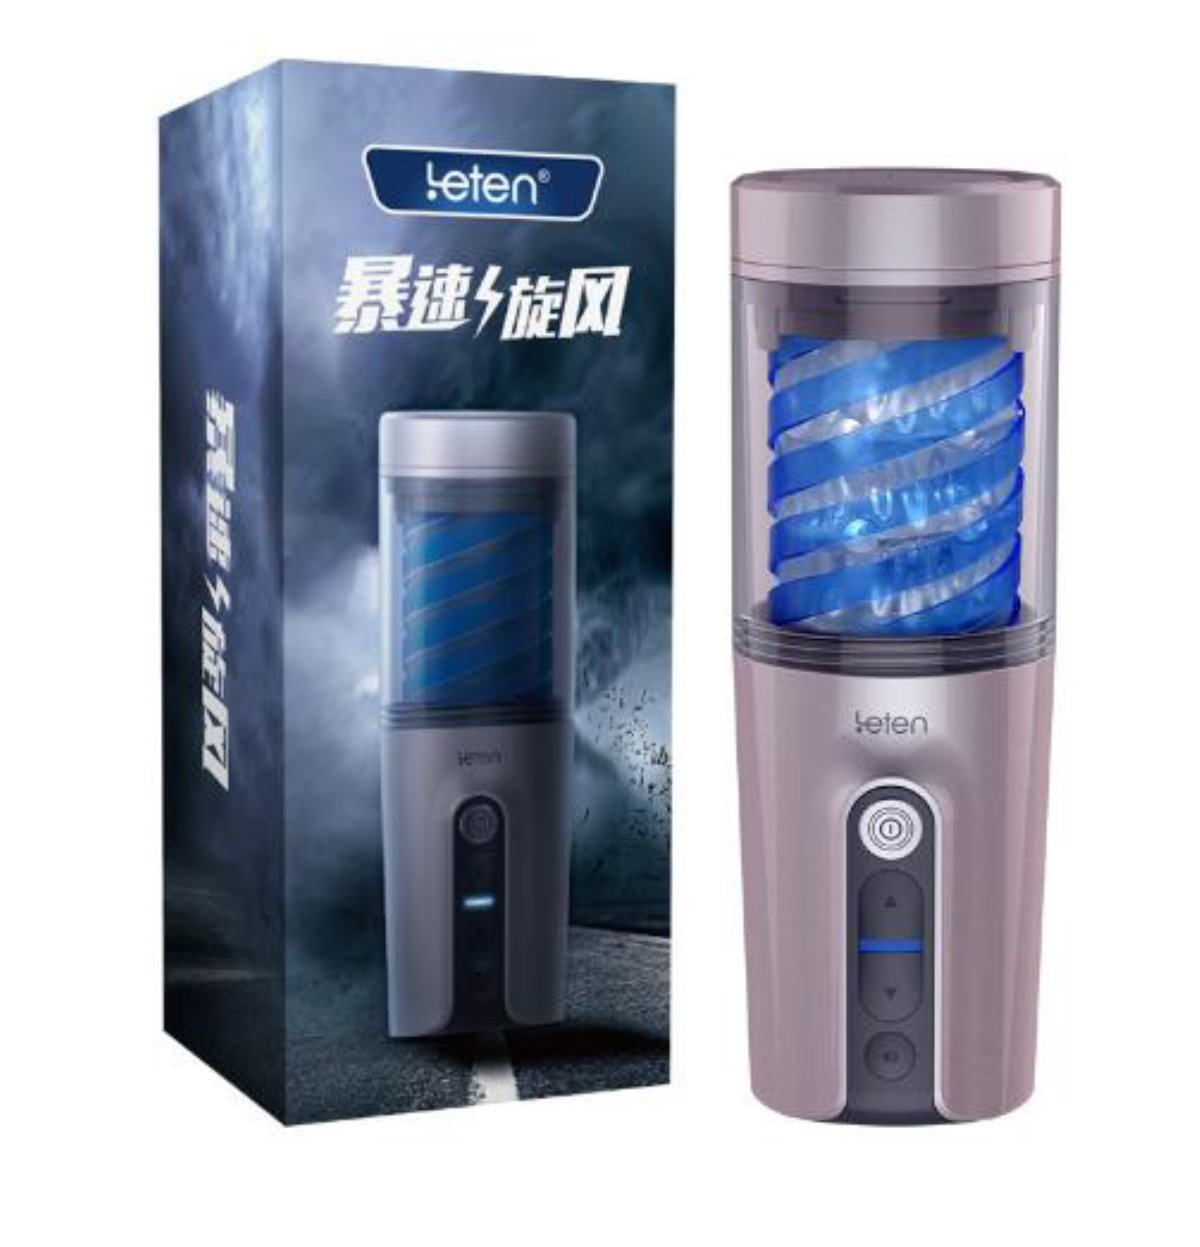 Premium Automatic Rotation and Copression Absorb Electric Sucker Intelligent Voice Interaction Machine for Men